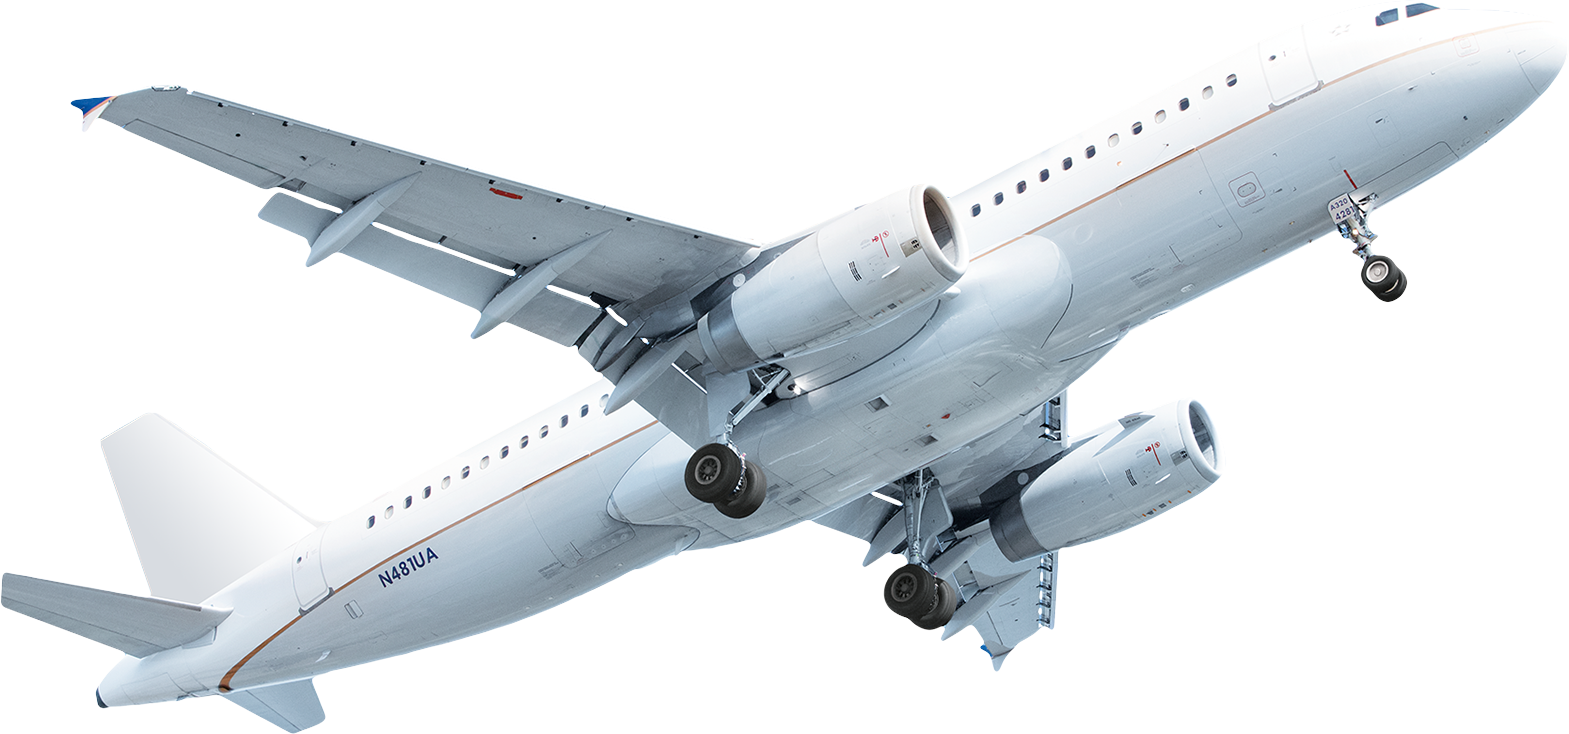 Planes png images free. Jet clipart commercial airplane